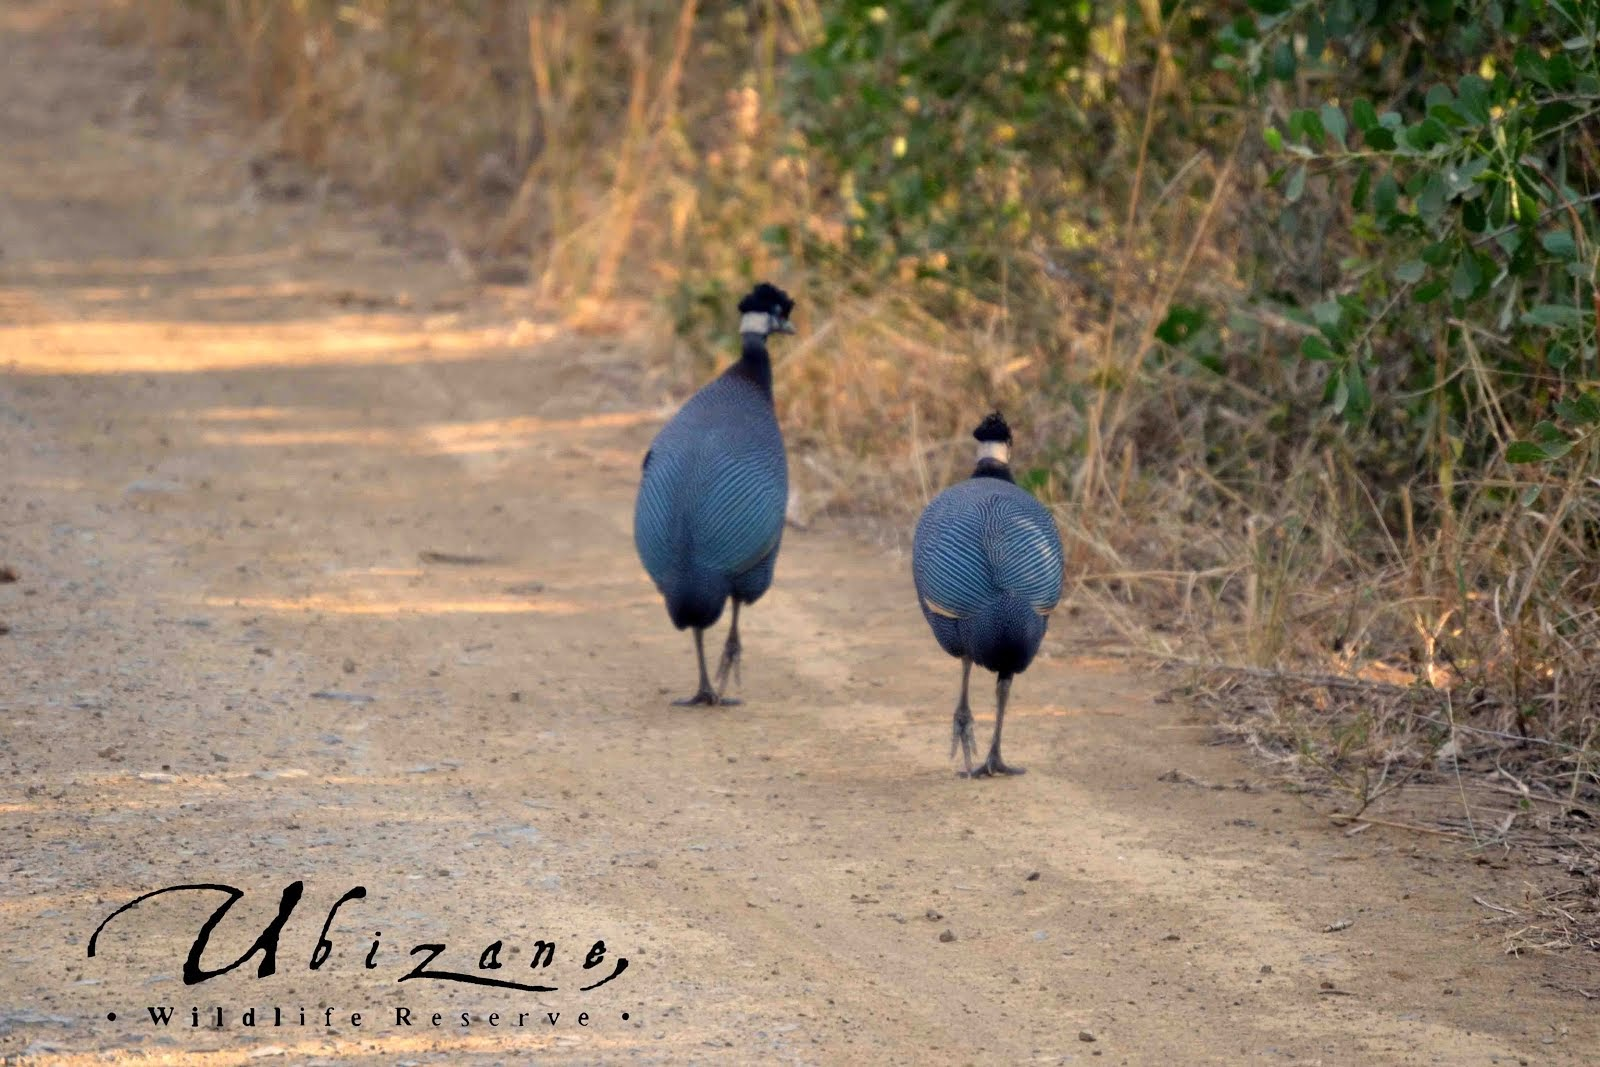 Crested Guineafowls